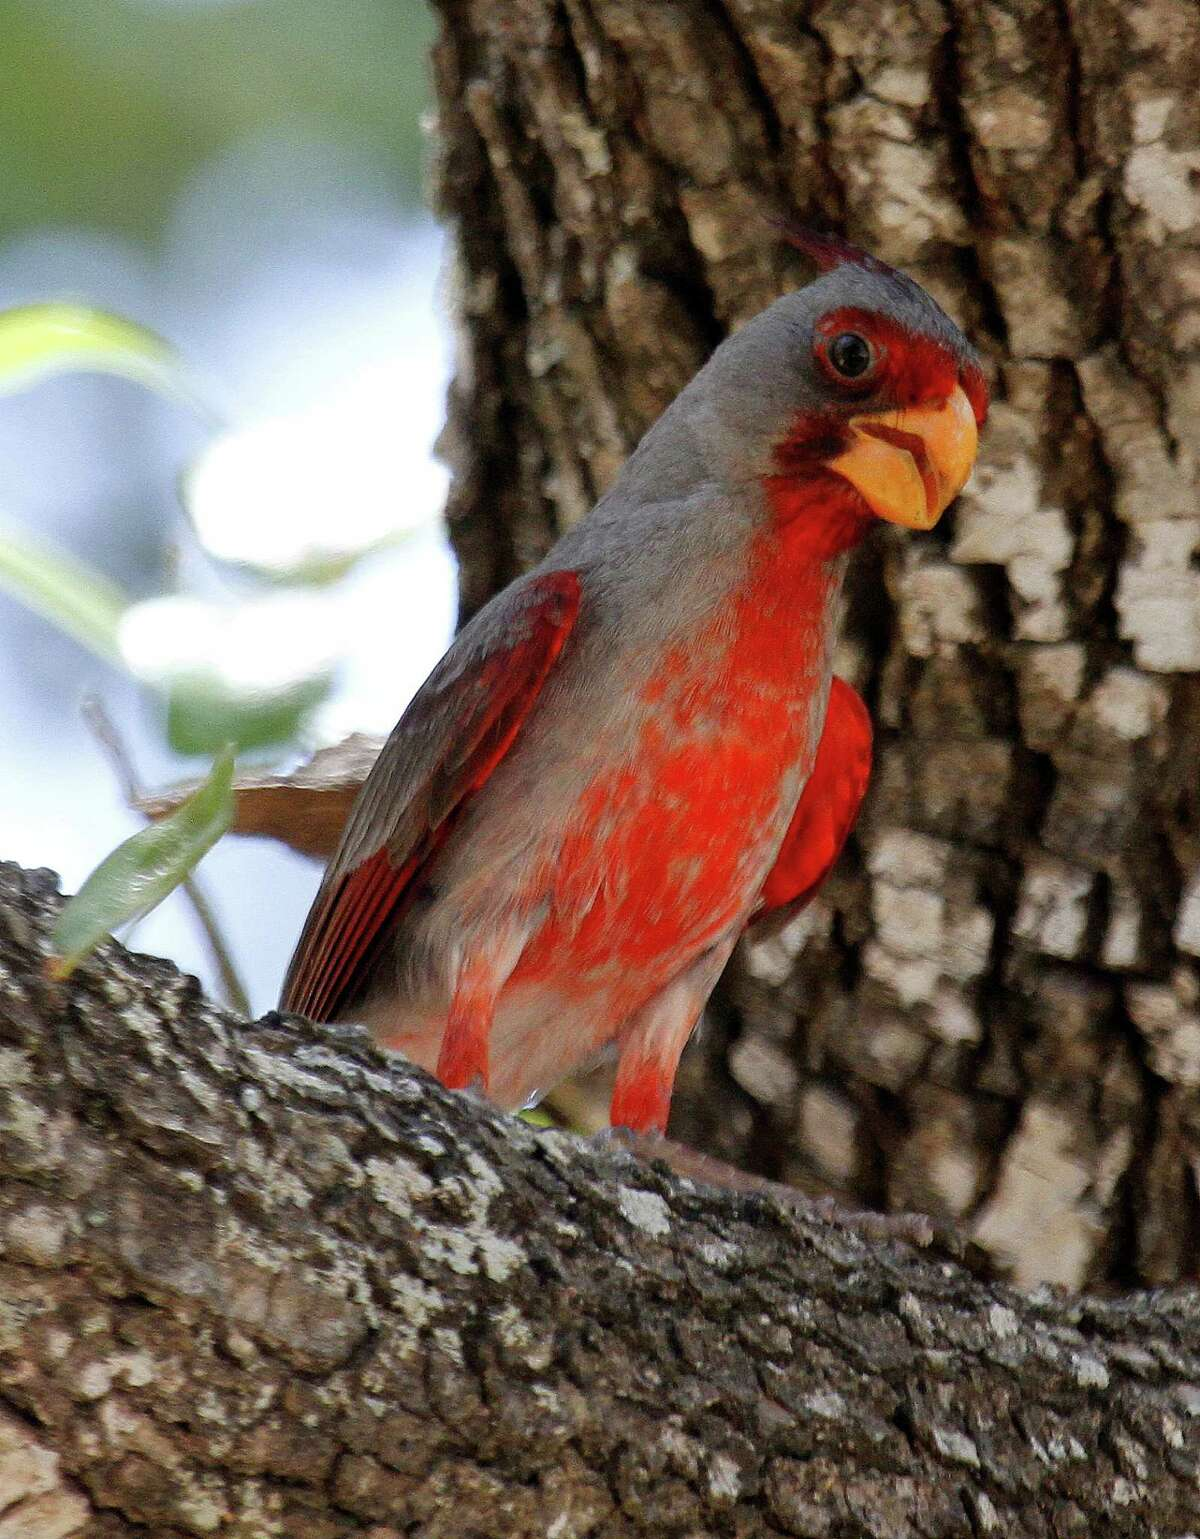 Pyrrhuloxia often are mistaken for their much more common northern cardinal cousins. These birds, with their thick, strong bills designed to crush hard seeds and nuts, are found in this country only in south and southwestern Texas and along the US/Mexico border in New Mexico and Arizona.